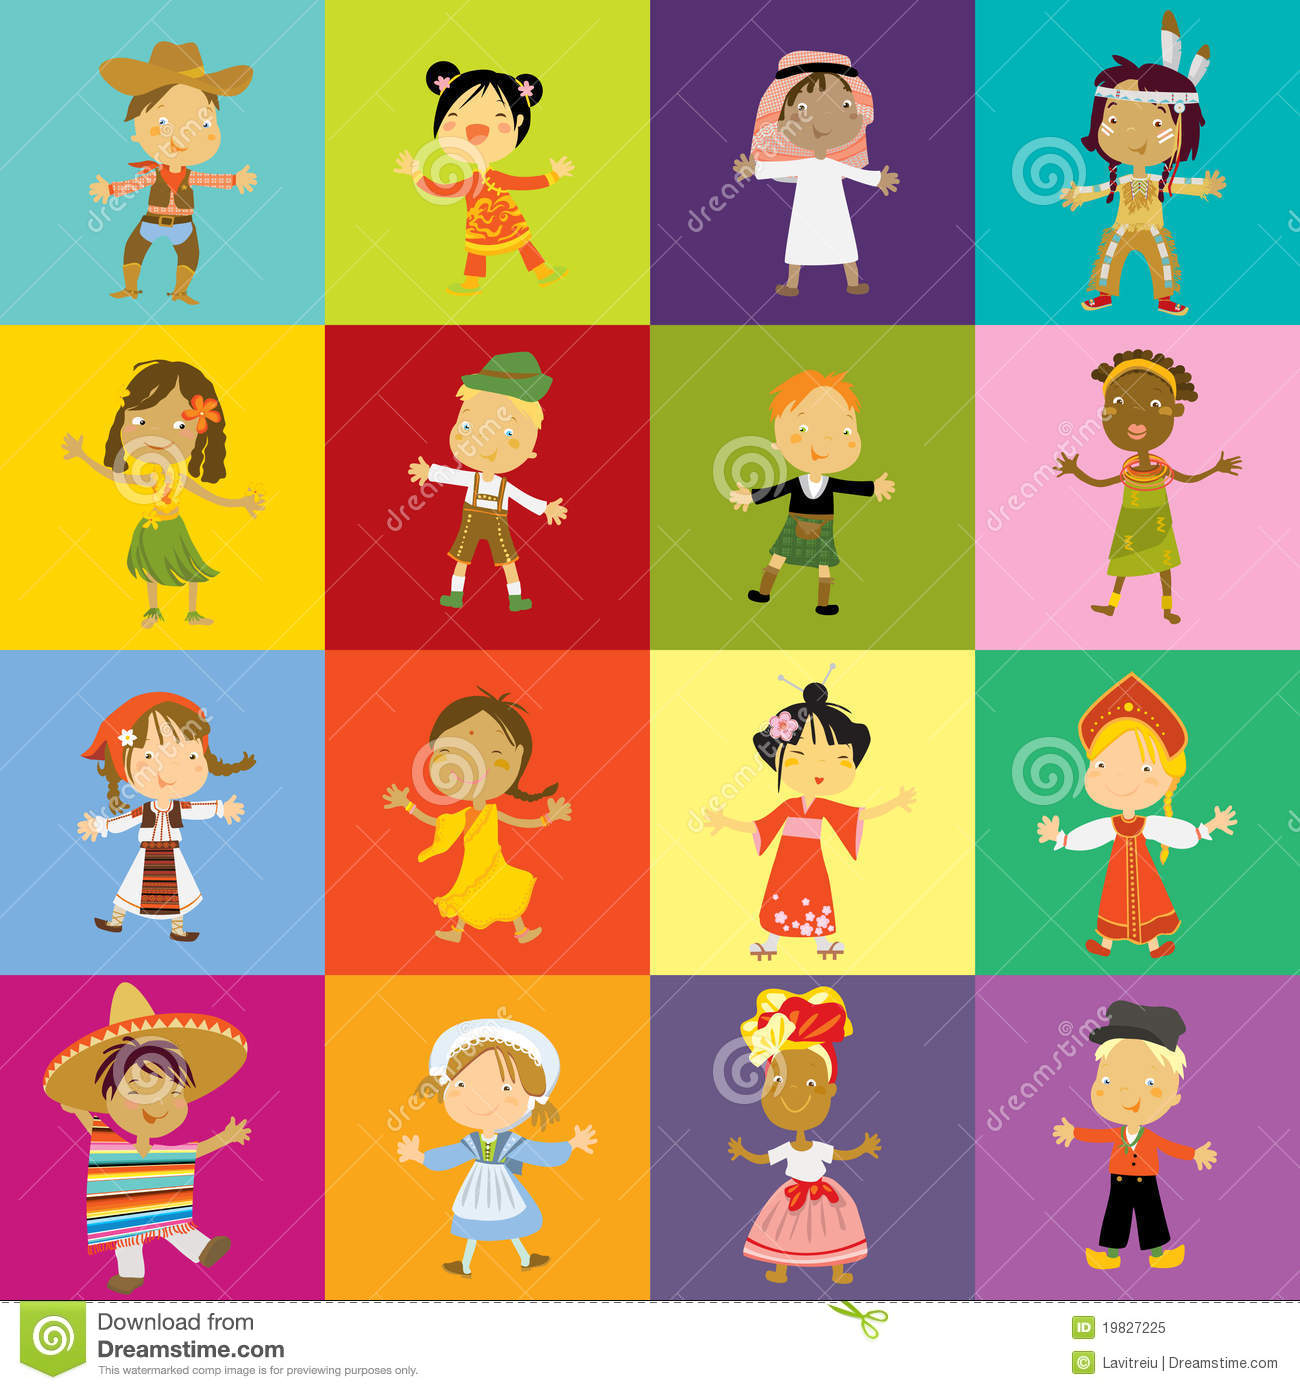 Kids Cultural Diversity Royalty Free Stock Photo - Image: 19827225